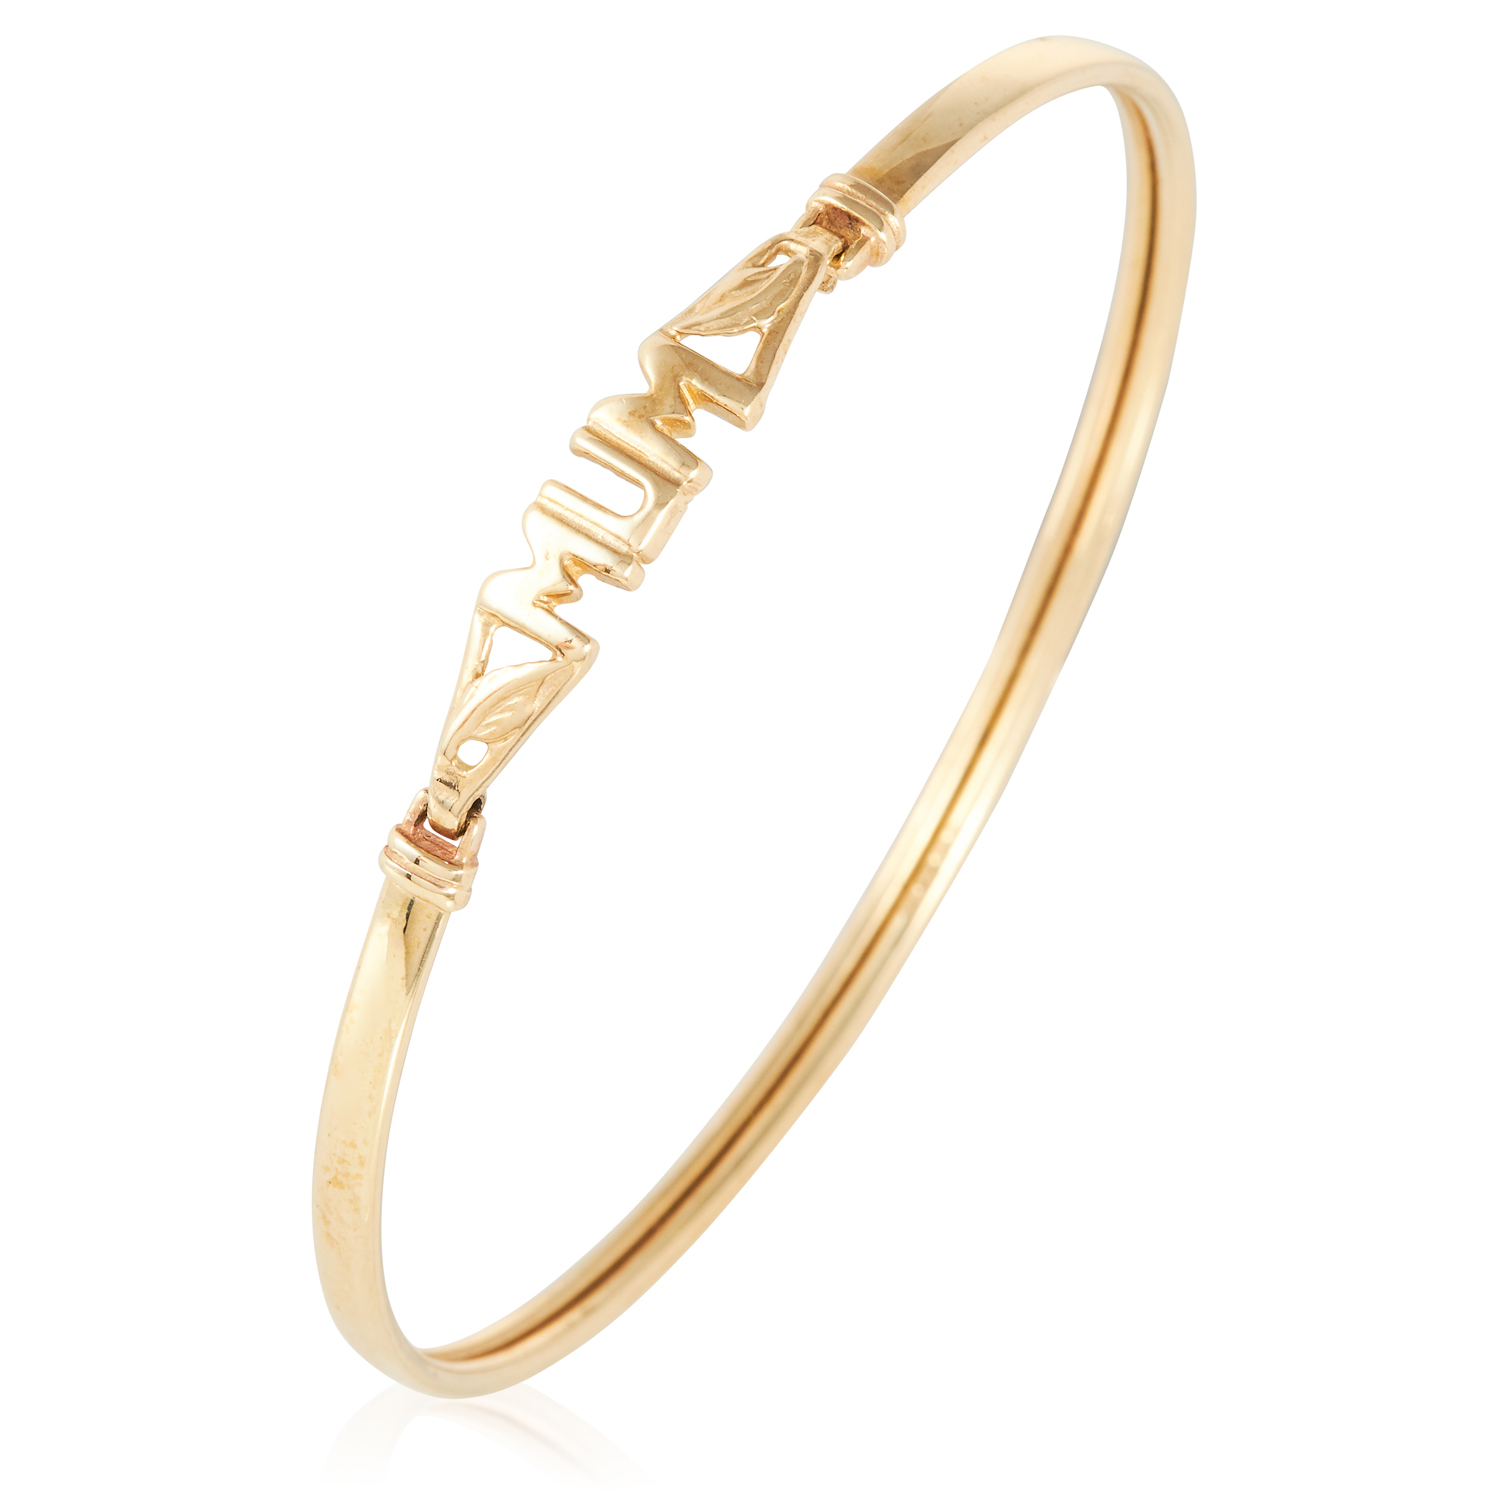 A GOLD BANGLE in yellow gold, comprising of a bangle with the word 'Mum', British hallmarks, 6cm